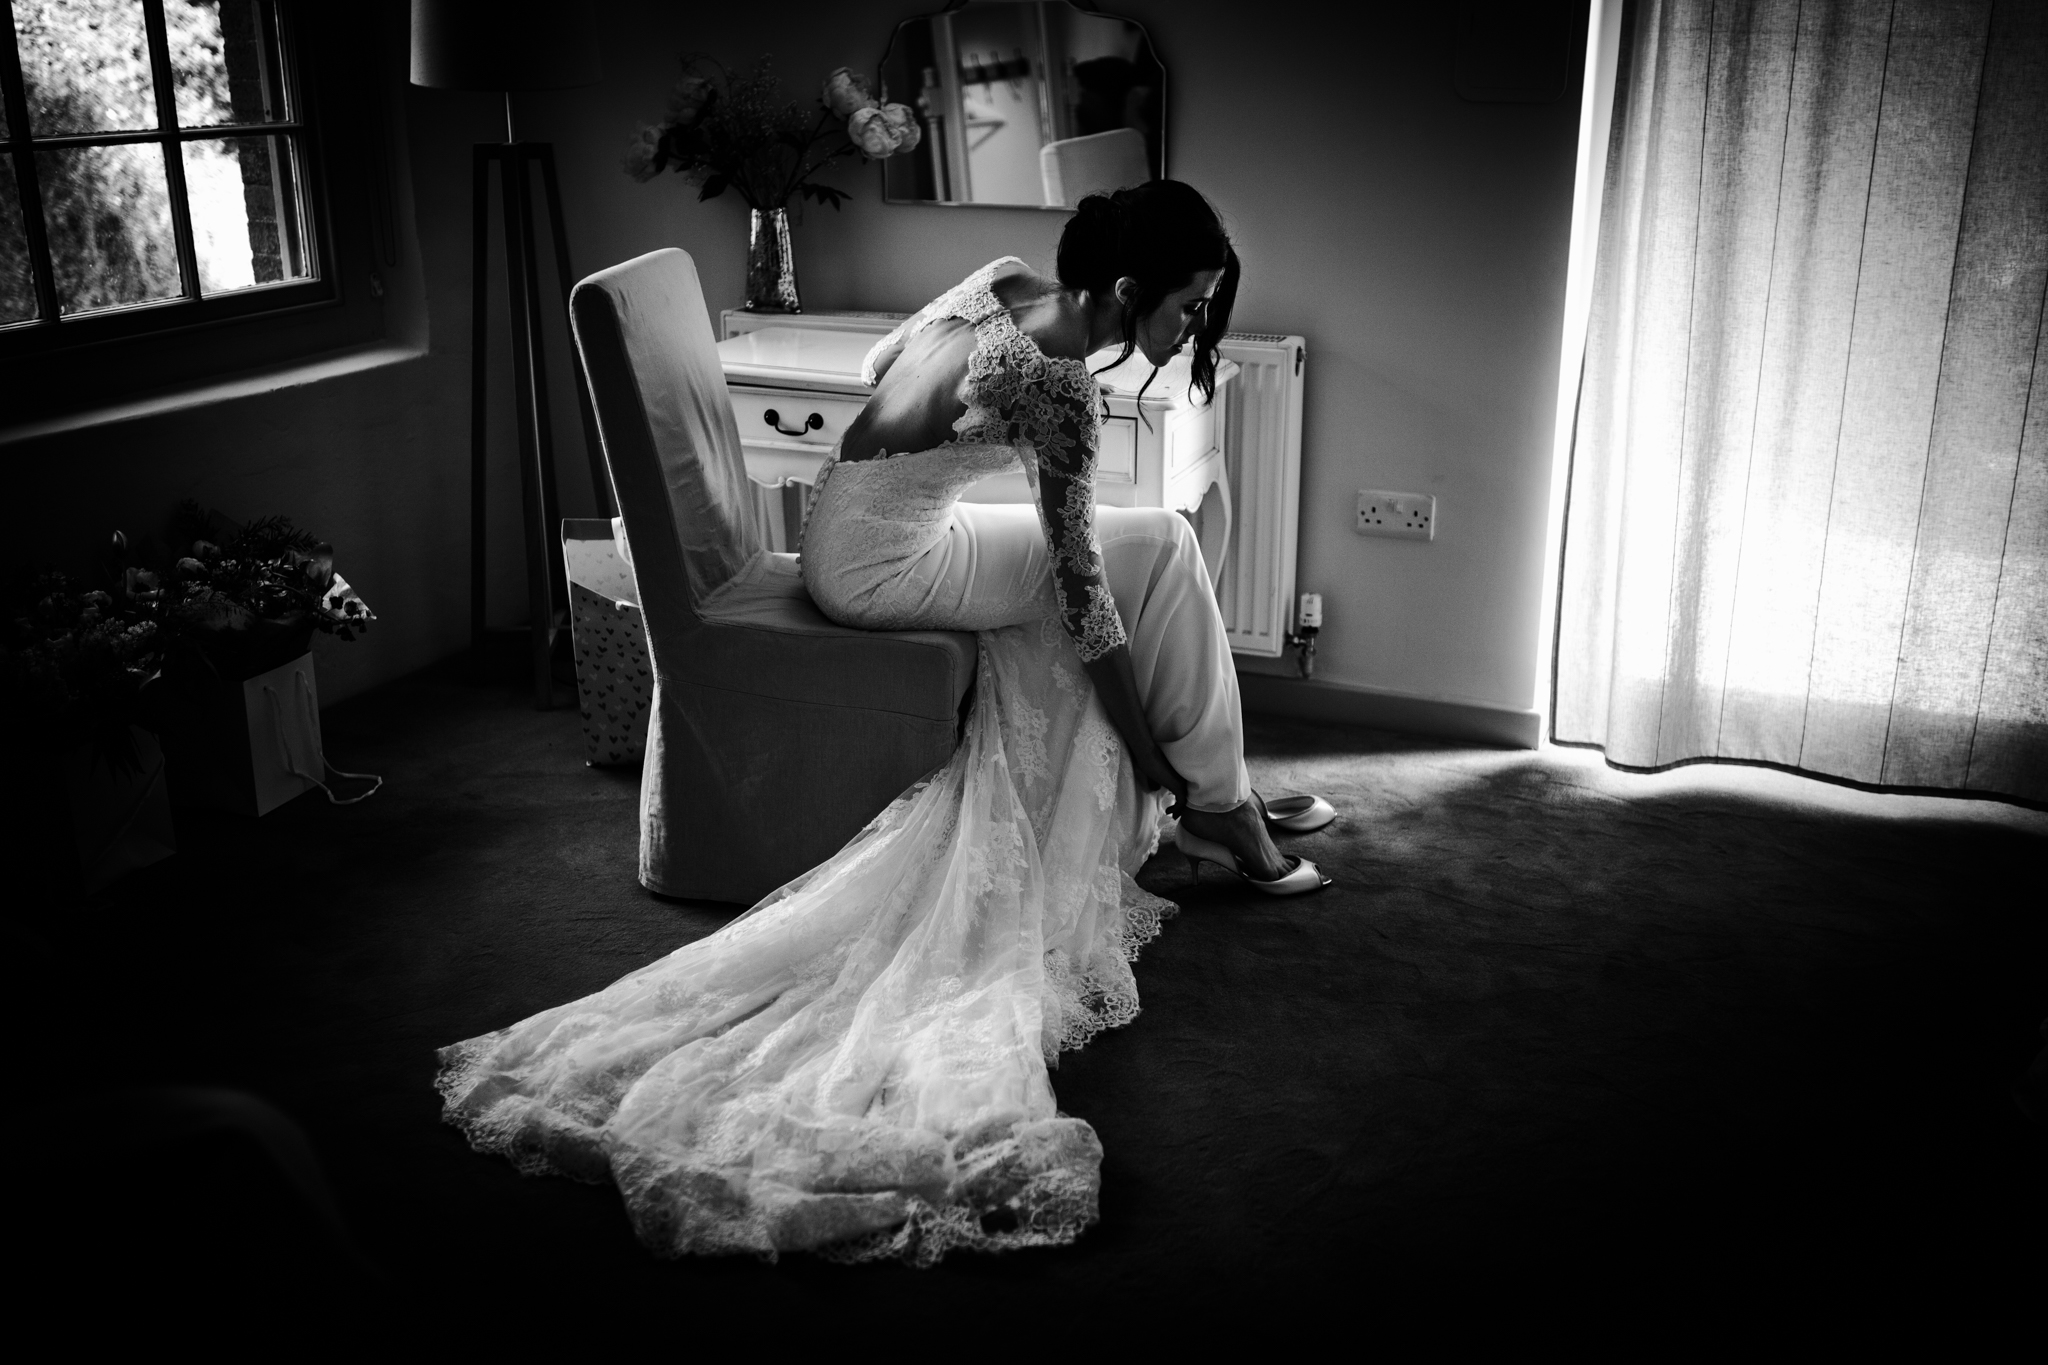 Bride putting her shoes on in a tidy hotel room